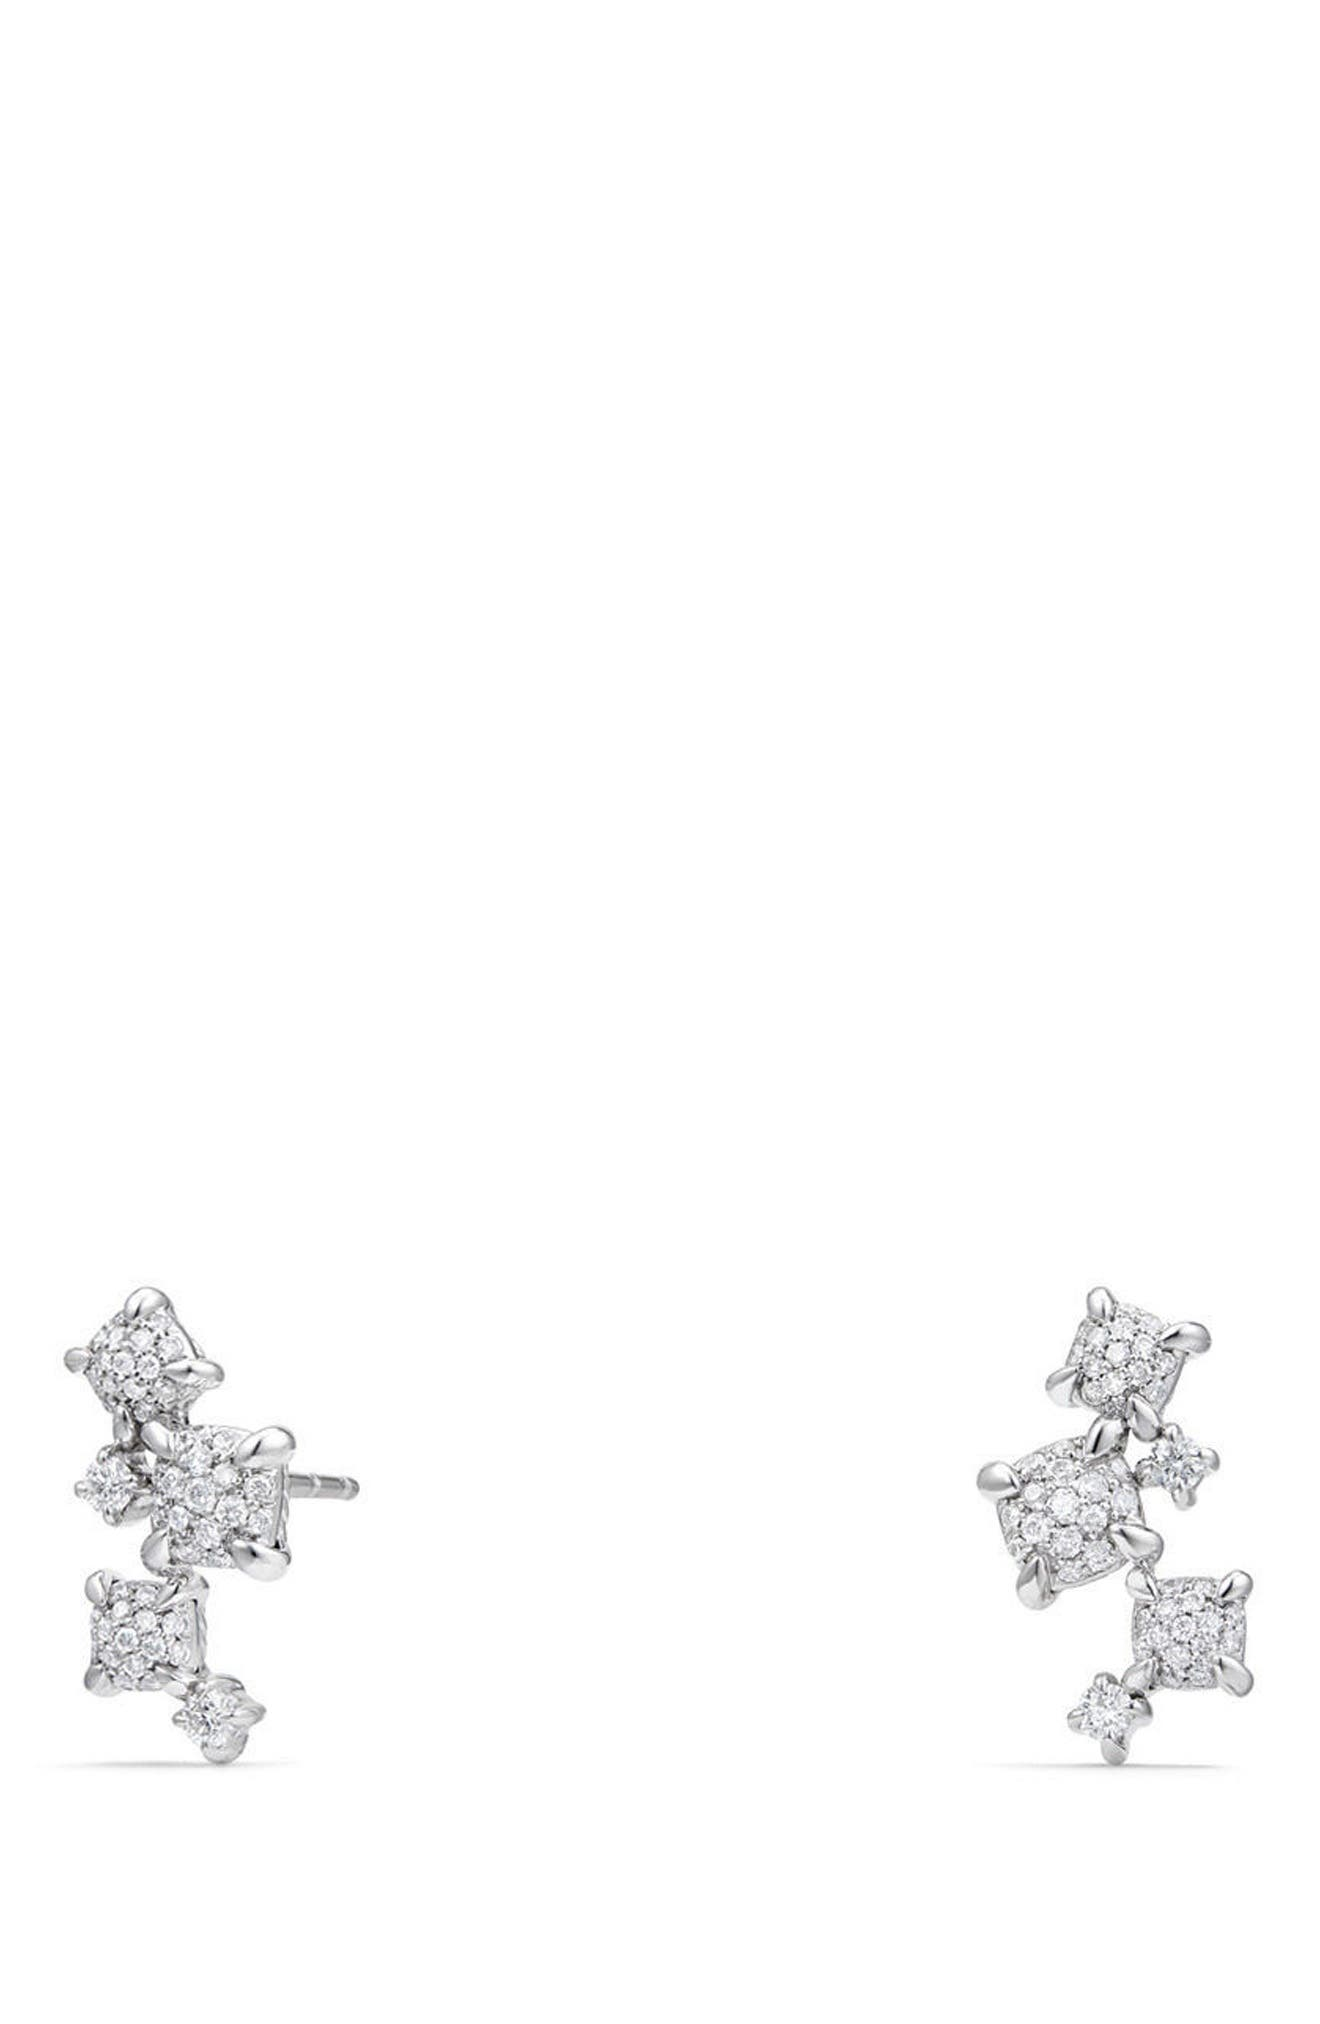 Alternate Image 1 Selected - David Yurman Petite Châtelaine Climber Earrings in 18K Gold with Diamonds